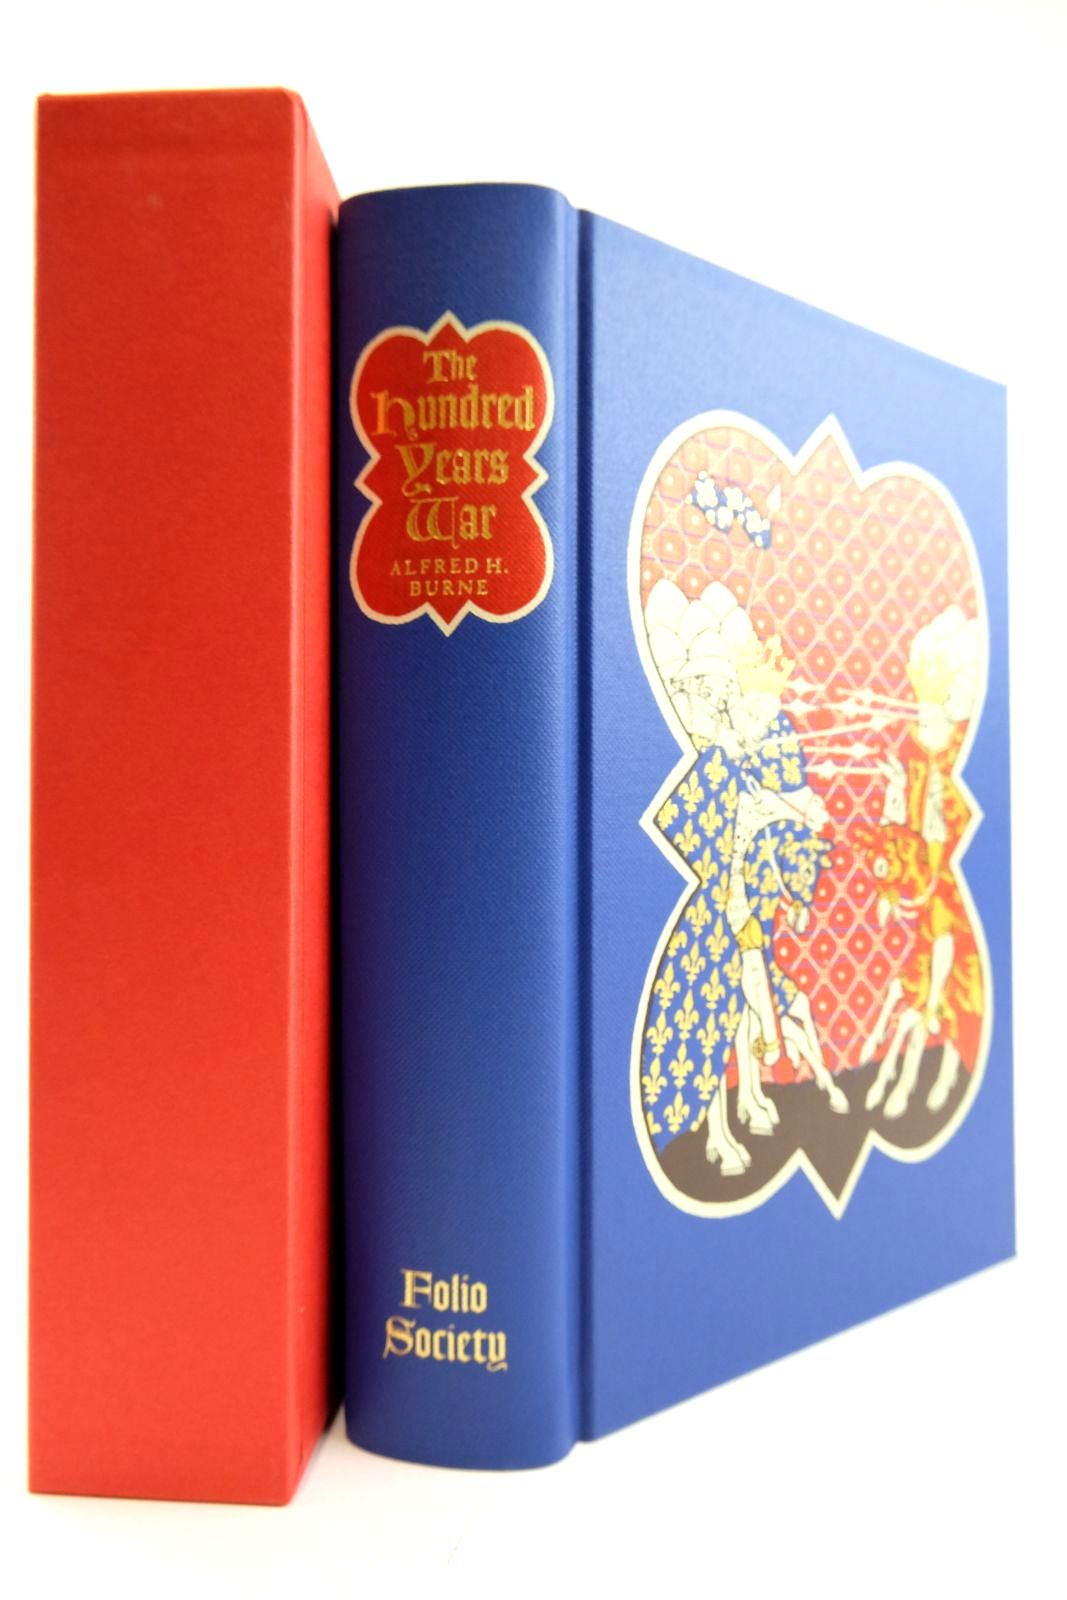 Photo of THE HUNDRED YEARS WAR written by Burne, Alfred H. Sumption, Jonathan published by Folio Society (STOCK CODE: 2133225)  for sale by Stella & Rose's Books